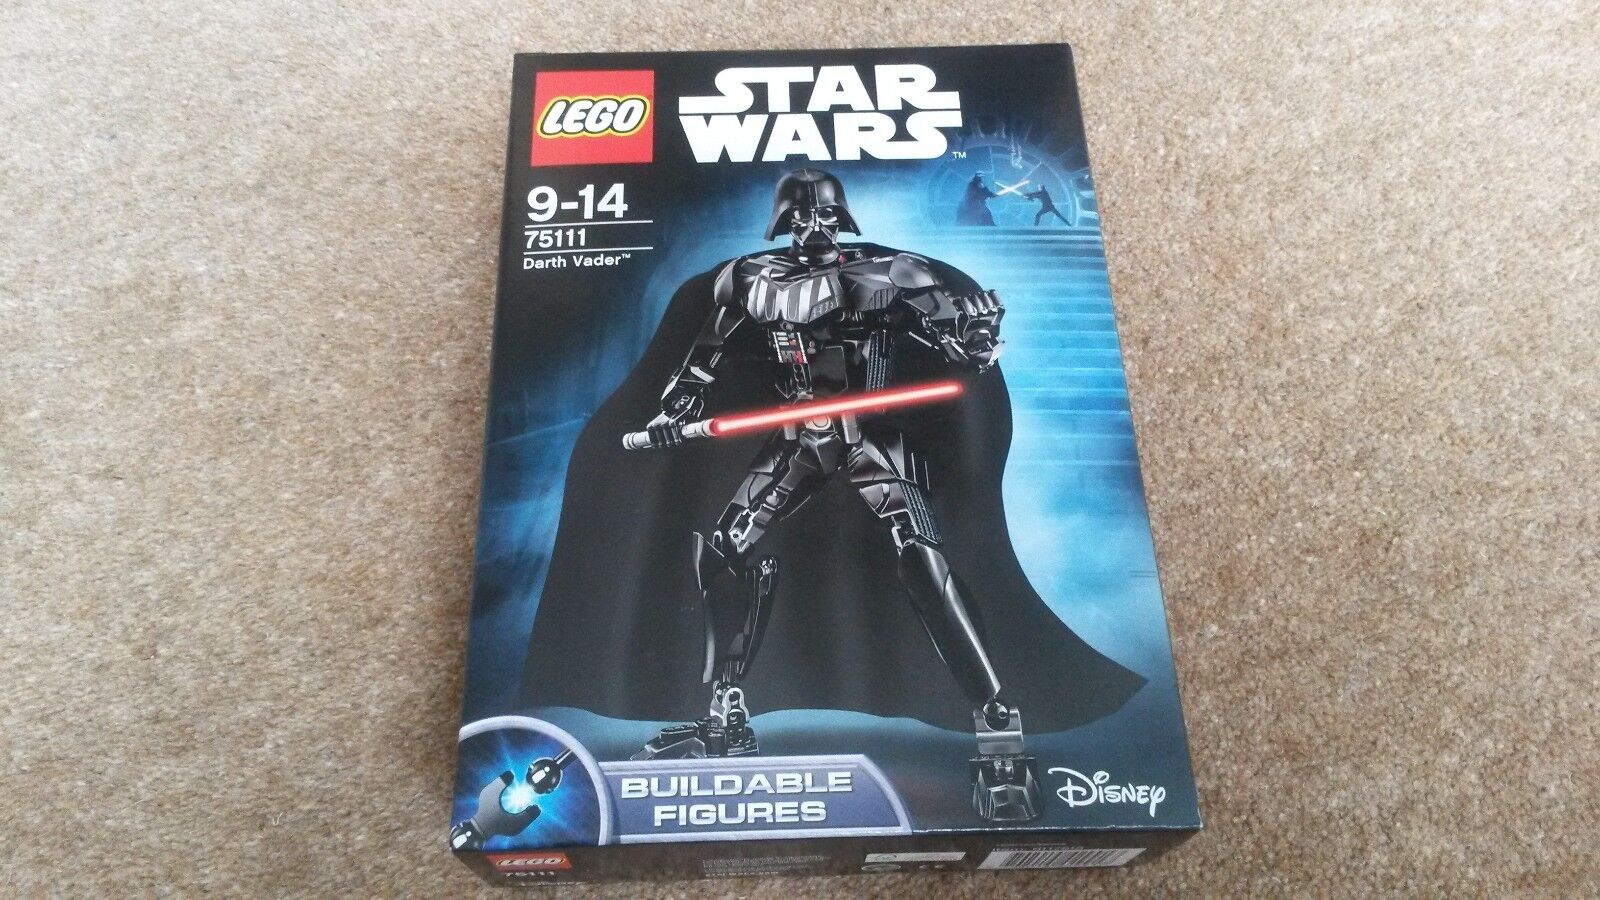 NEW Lego Darth Vader (75111) Star Wars Buildable Figure, retired product